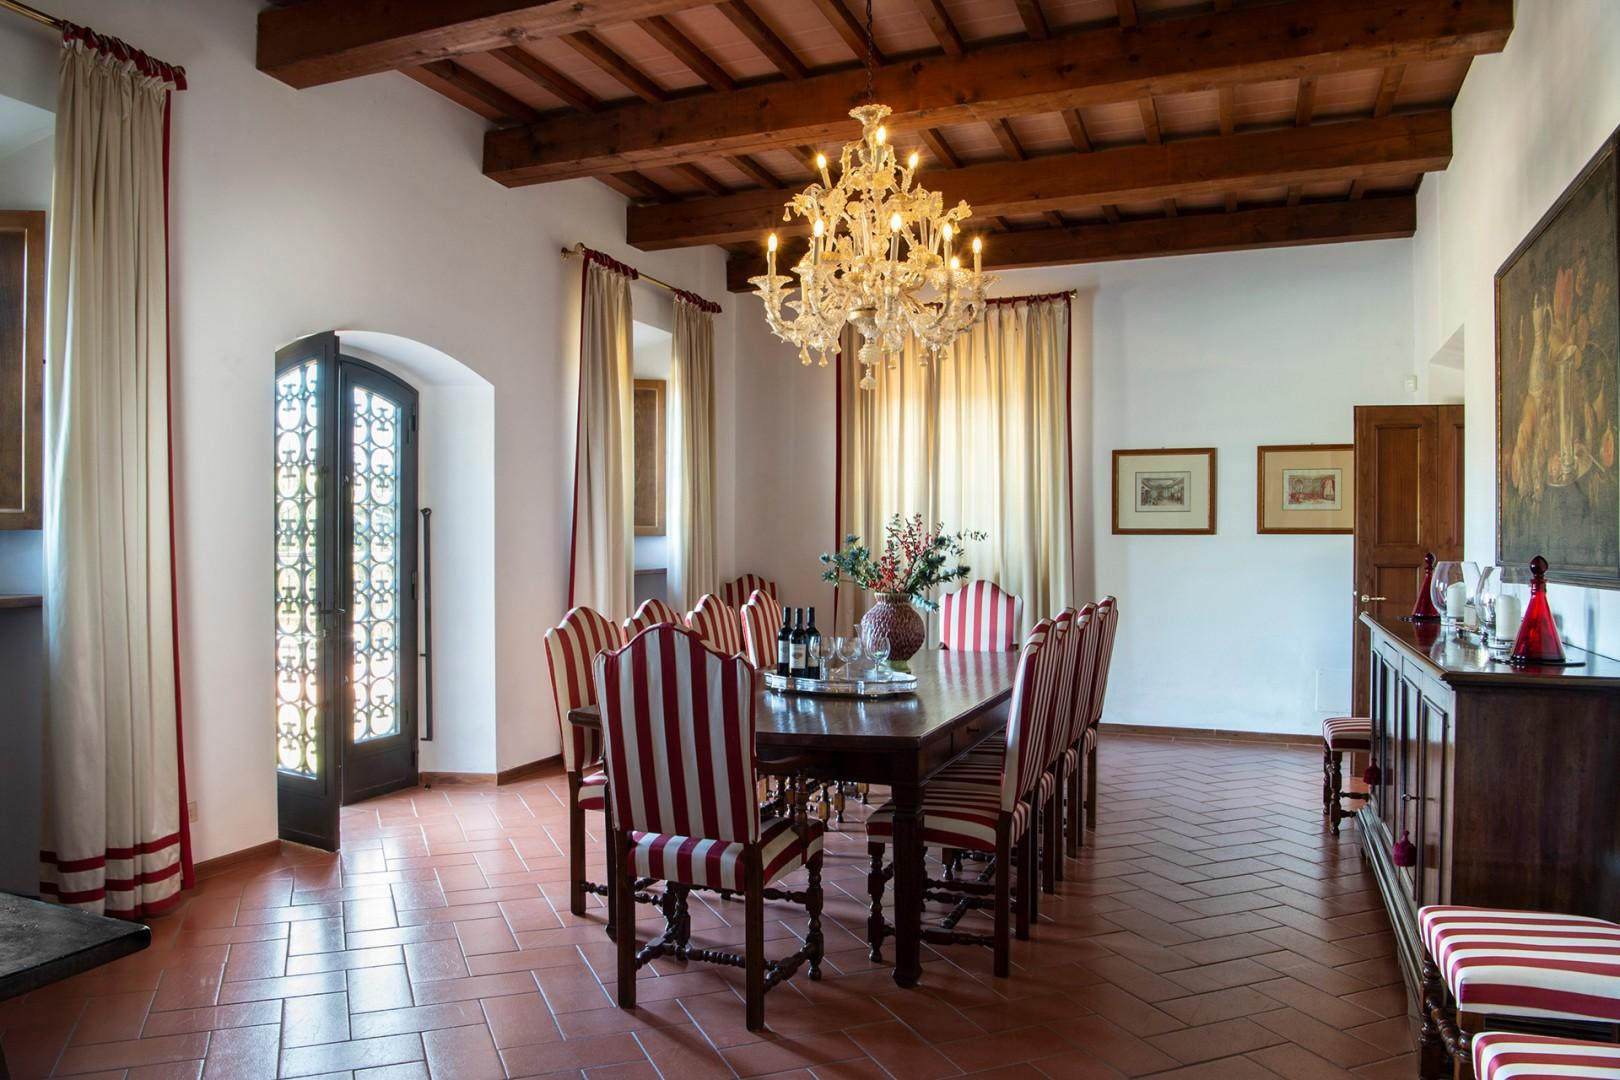 French doors in the dining room open out onto the terrace.